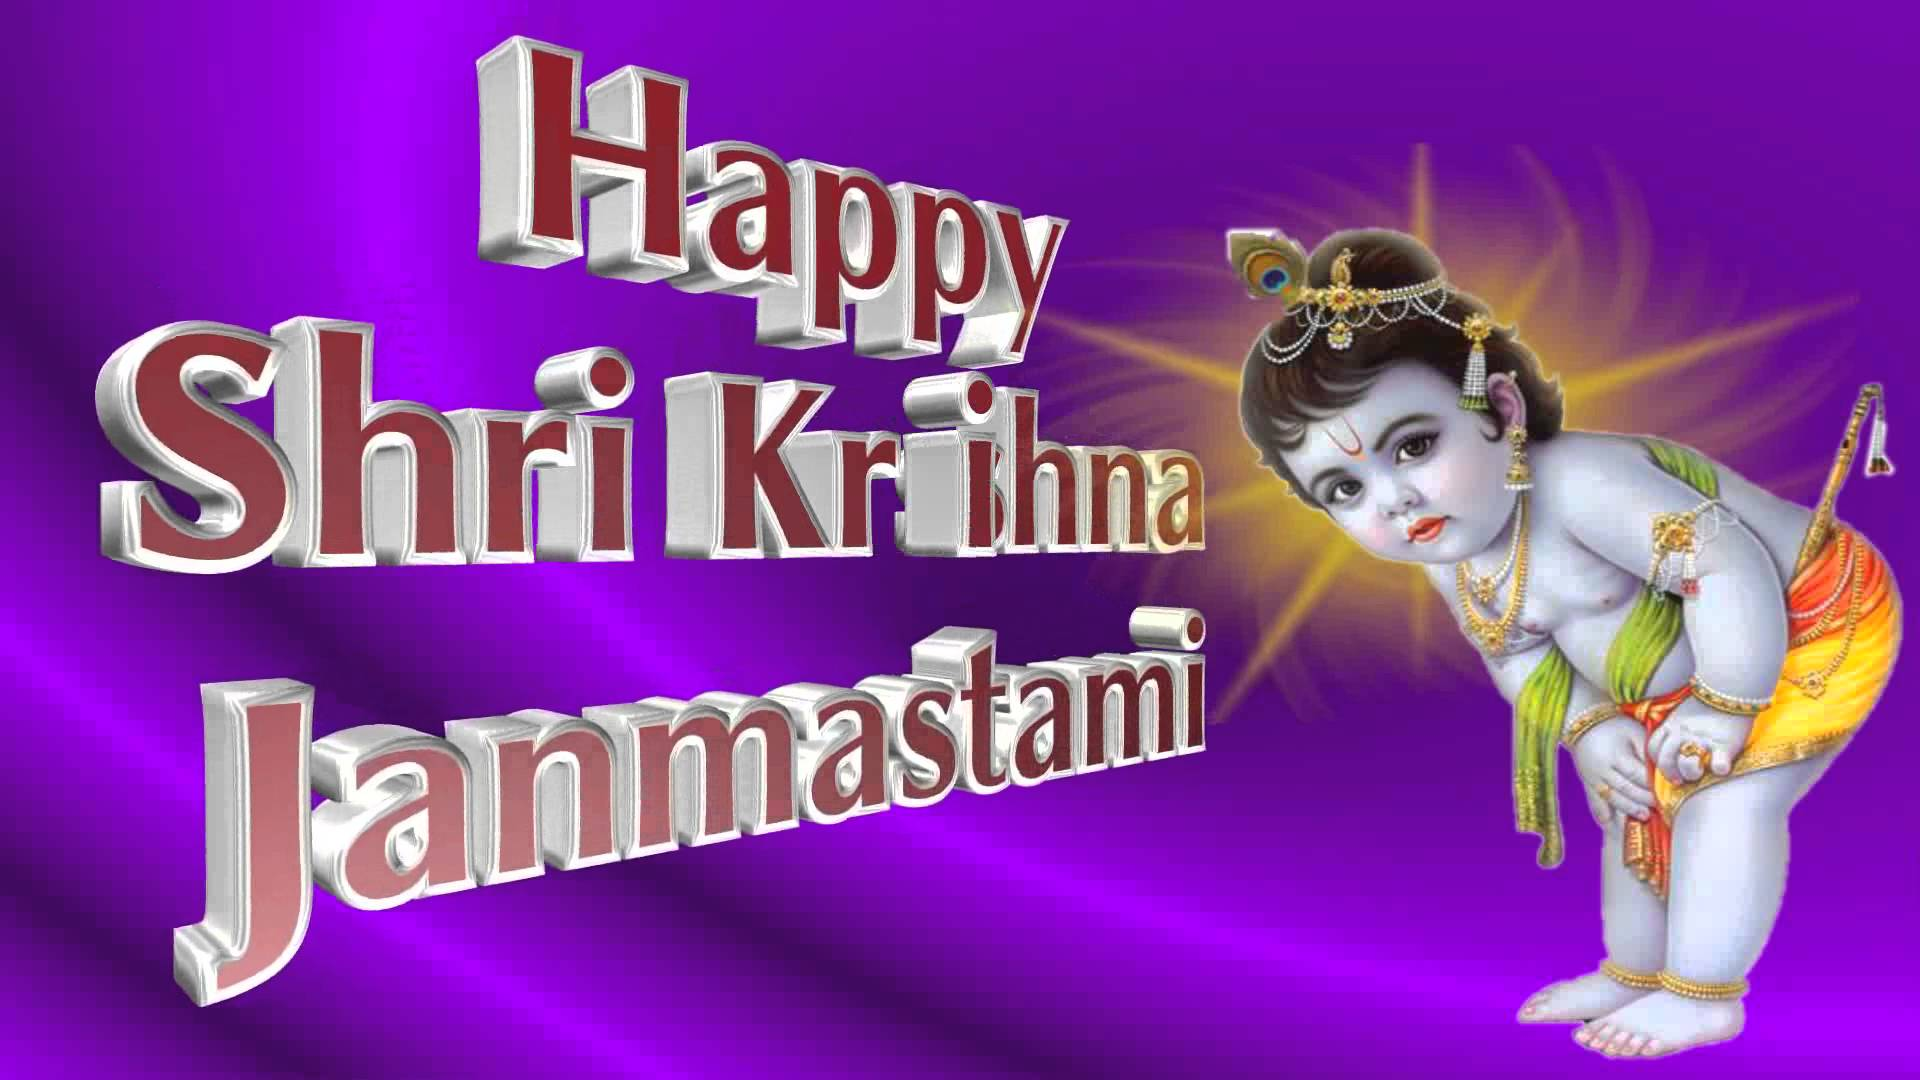 Happy Krishna Janmashtami Wishes And Quotes For Your Loved Ones